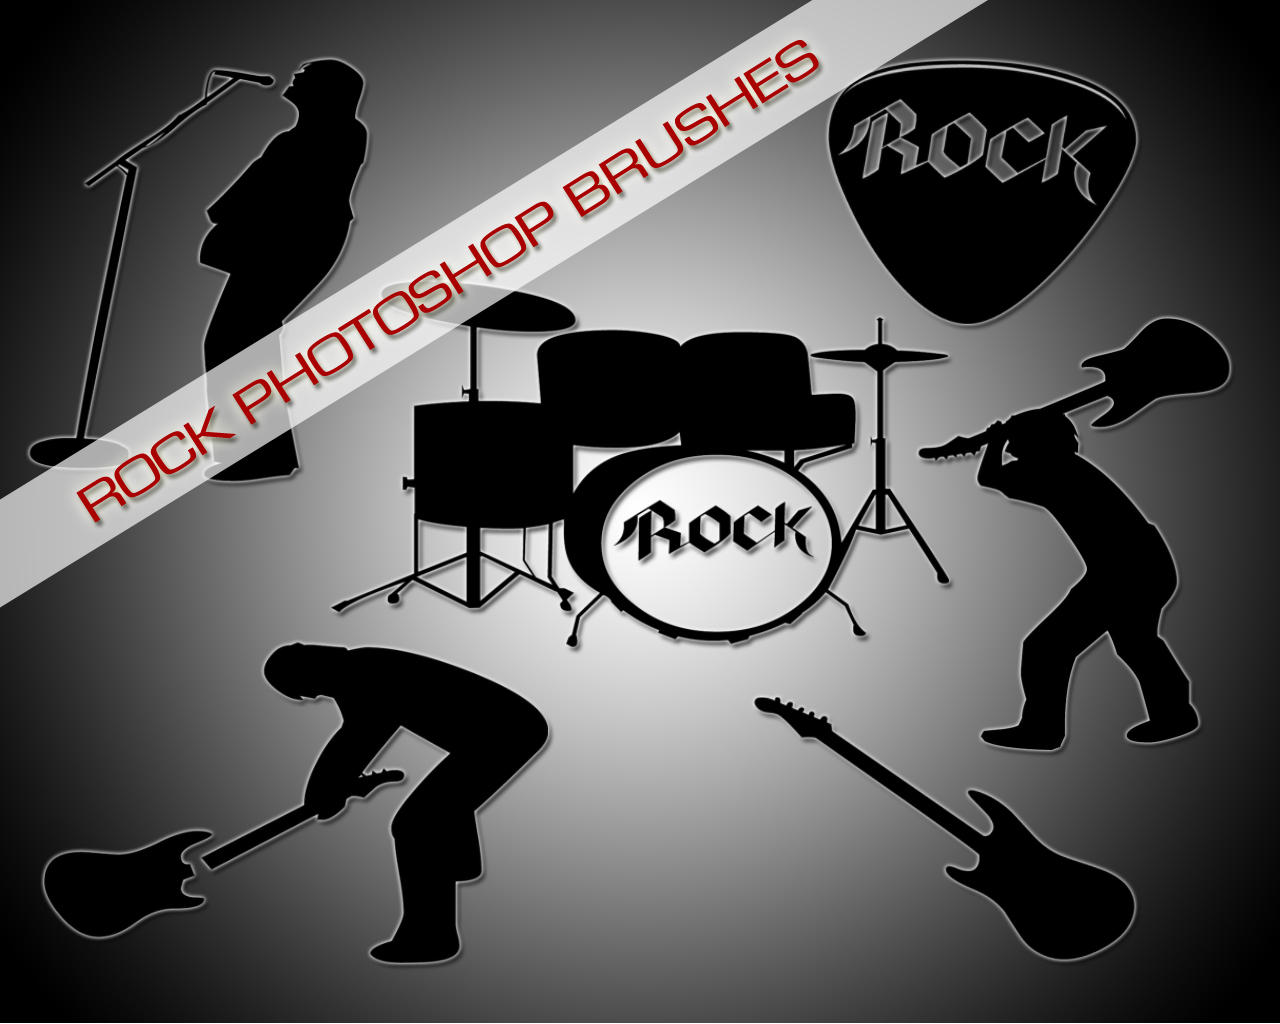 Rock Photoshop Brushes by DOMDESIGN